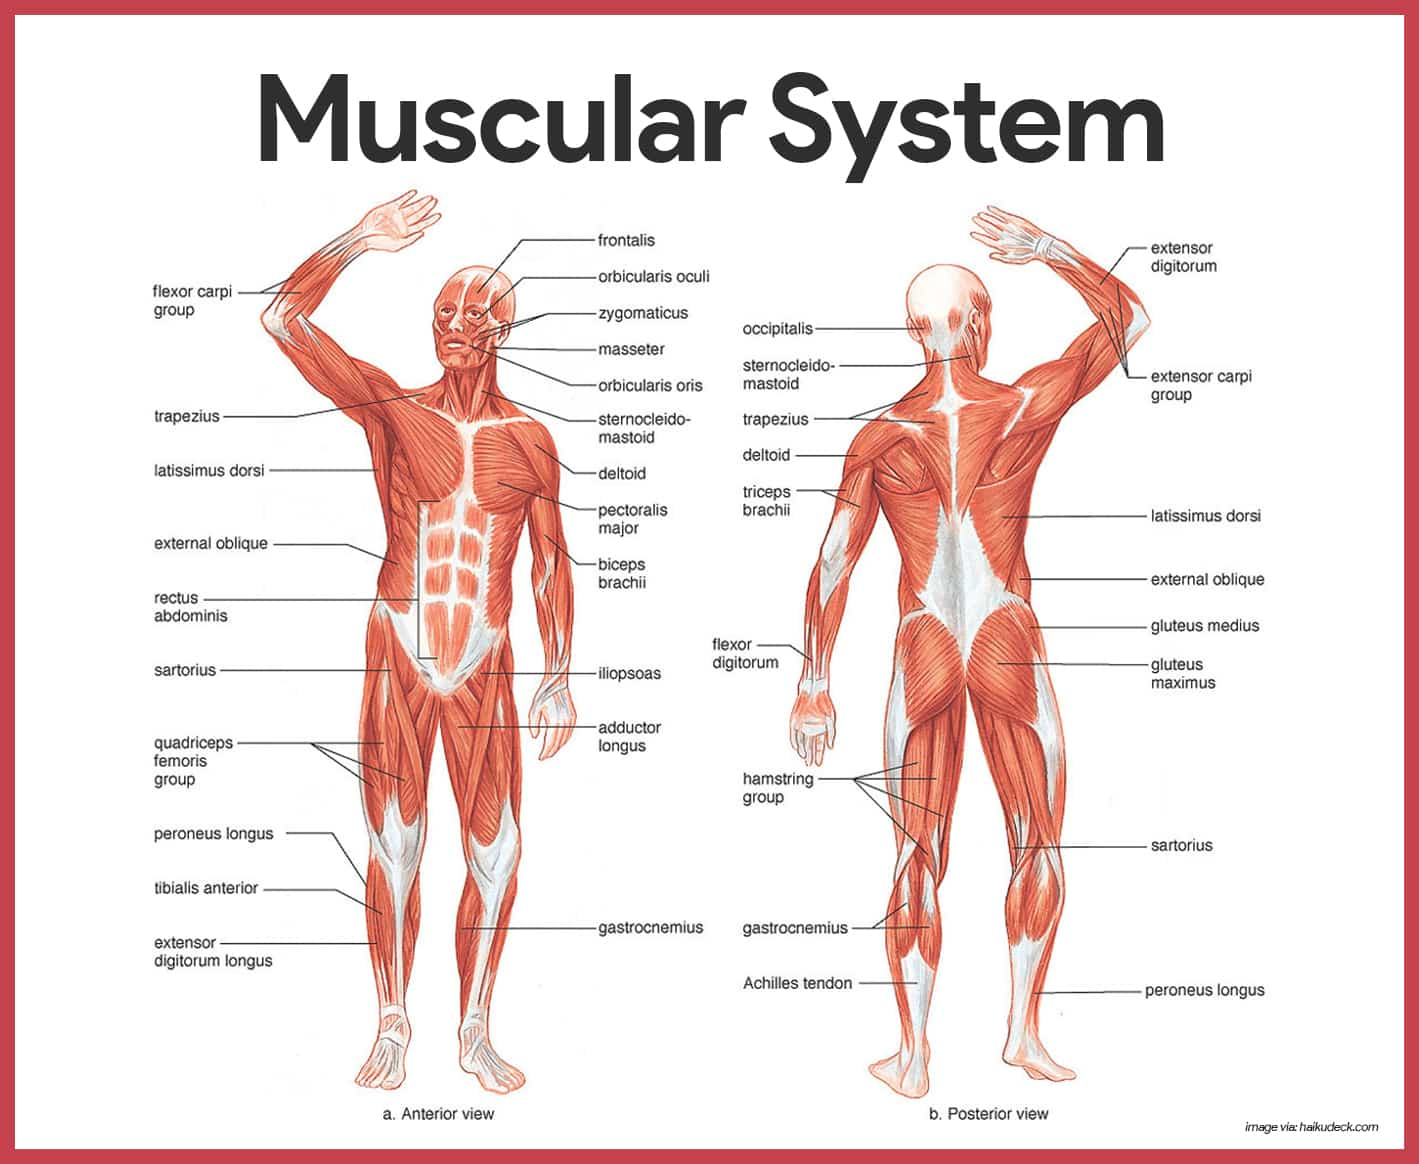 Muscular System Anatomy Physiology on skeleton diagram to label the bones